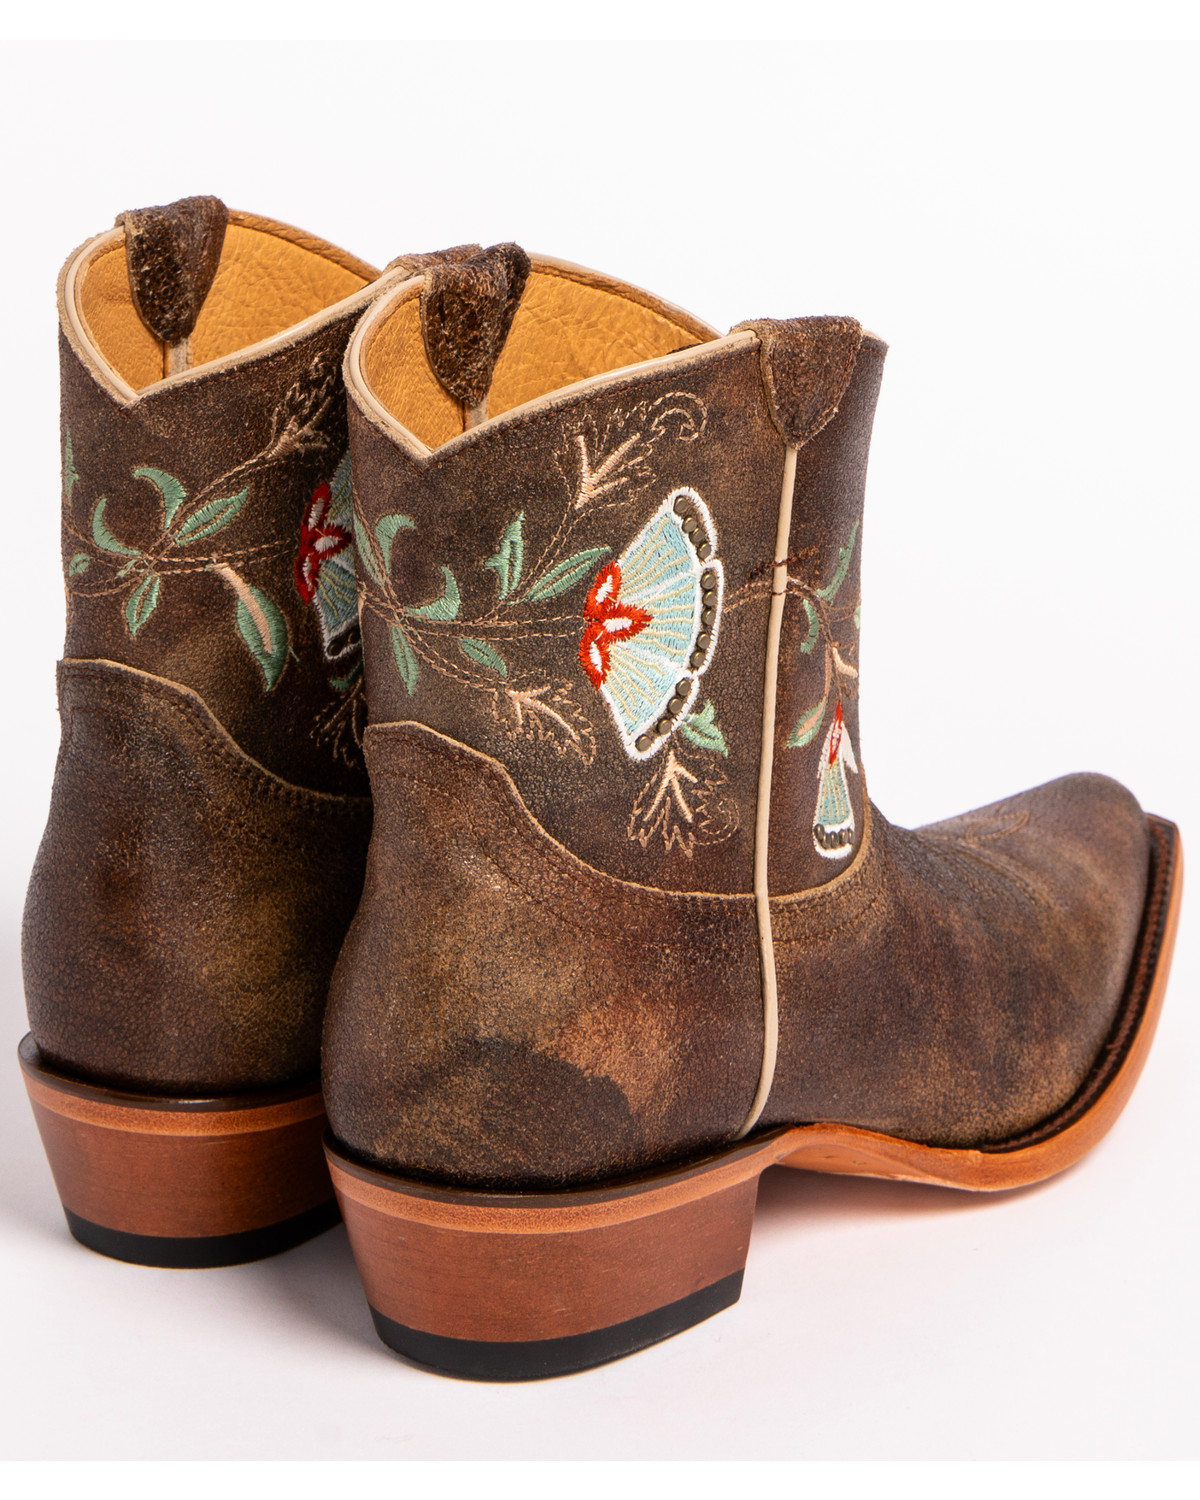 Corral Women's Bone White Floral Embroidery & Crystal Western Boots A3521